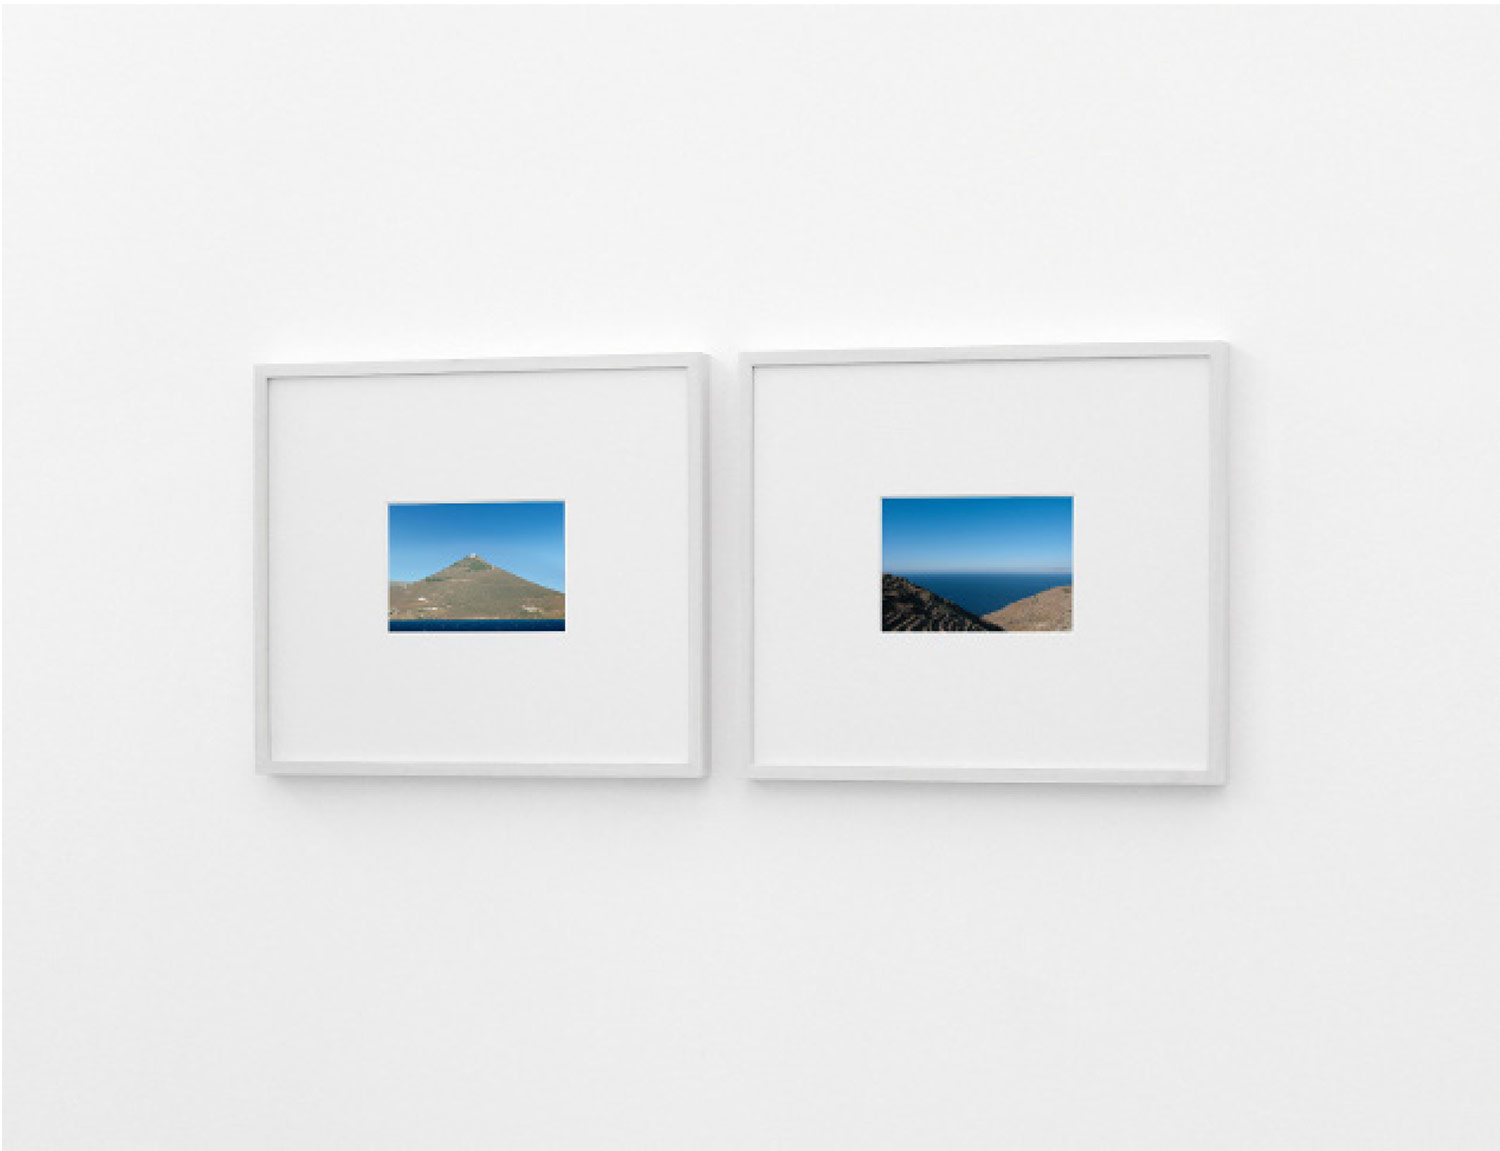 Untitled (diptyque), 2010